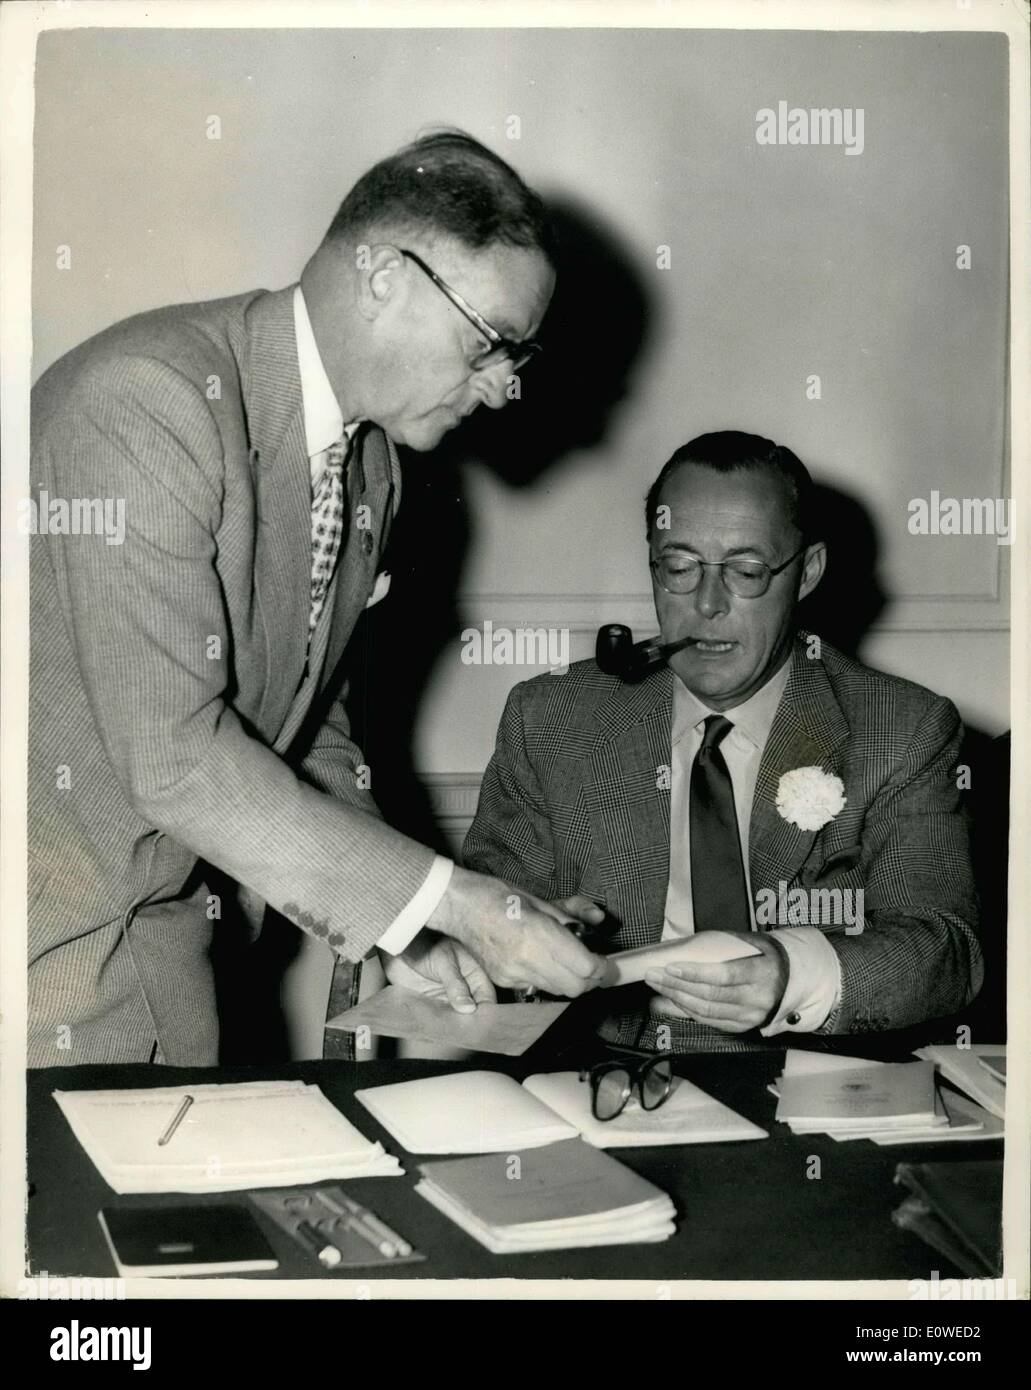 Jul. 20, 1962 - The Annual Meeting of The International Equestrian Federation For the first time since it was founded in 1927 the Executive Committee of the Federation Equestre Internationale (International Equestrian Federation - F.E.I) met at the offices of the British Horse Society, Bedford square, London. Prince Bernhard of the Netherlands took the chair. Photo Shows:- M.E.A. Sarasin - of Switzerland, (2nd. vice-president) talking over notes with Prince Bernhard of the Netherlands (Chairman) at the meeting. - Stock Image